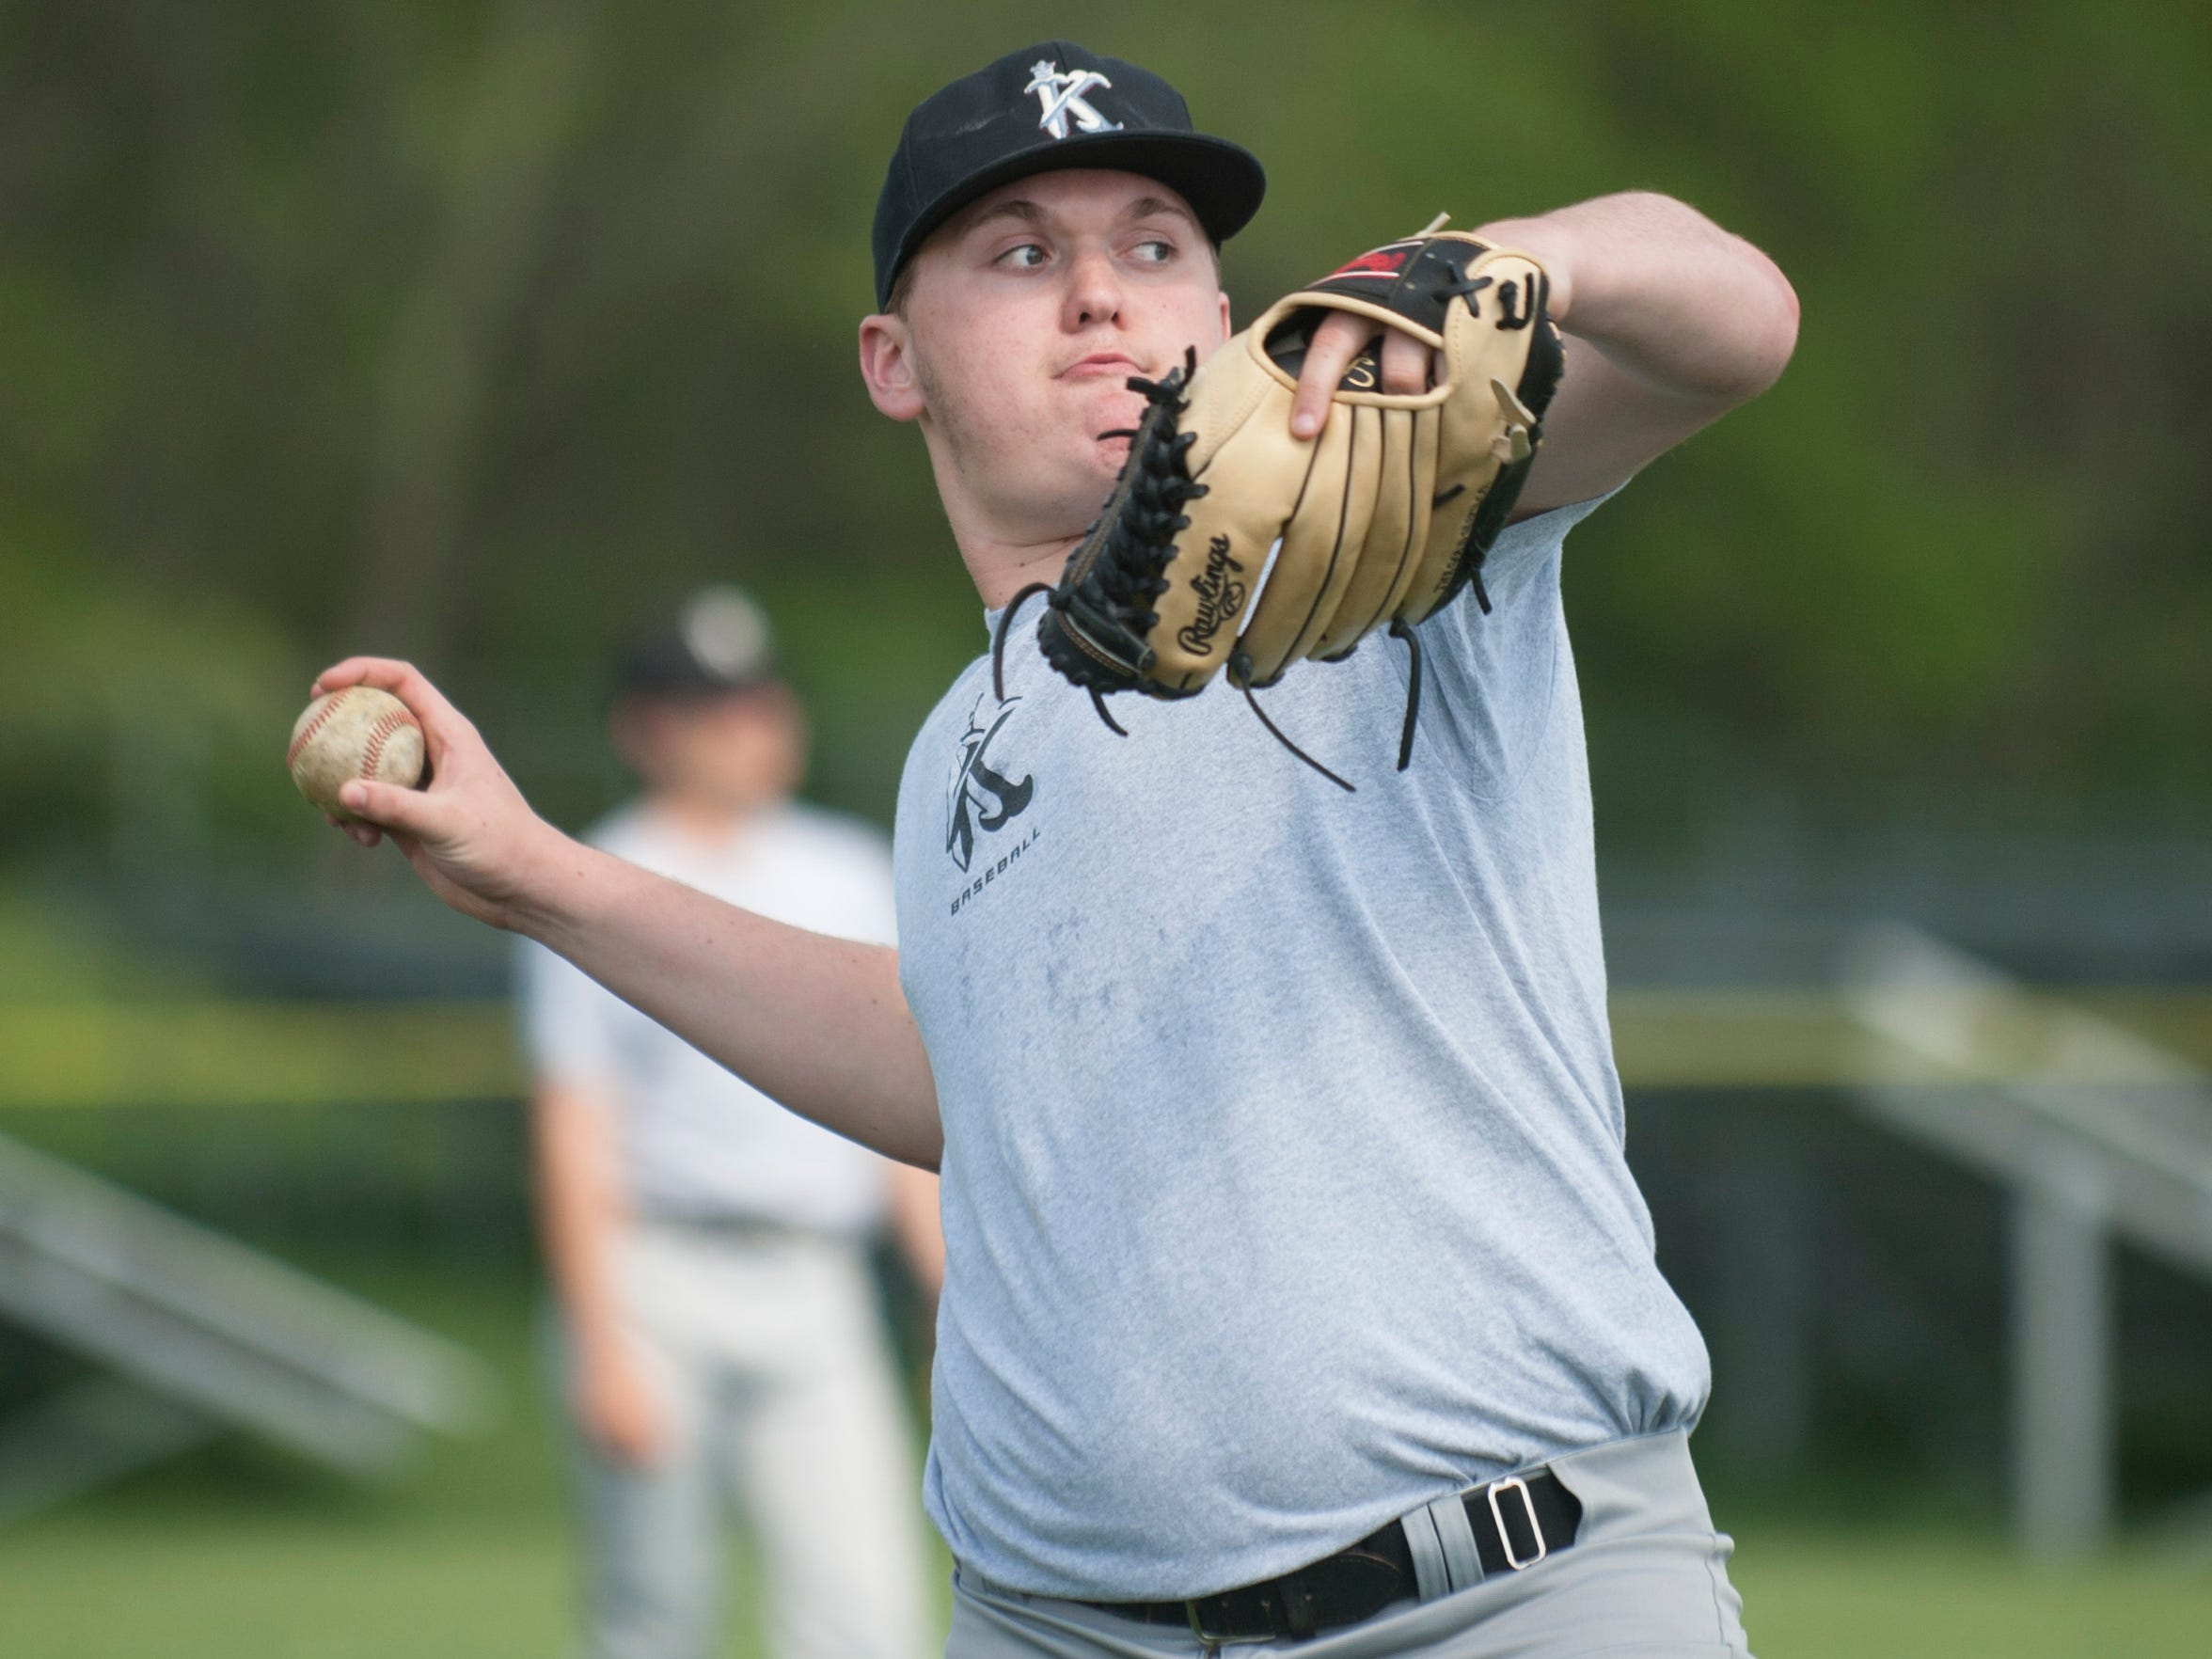 Kings Christian baseball player Jake Andrey makes a throw during a practice in Moorestown on Monday, May 7, 2018.